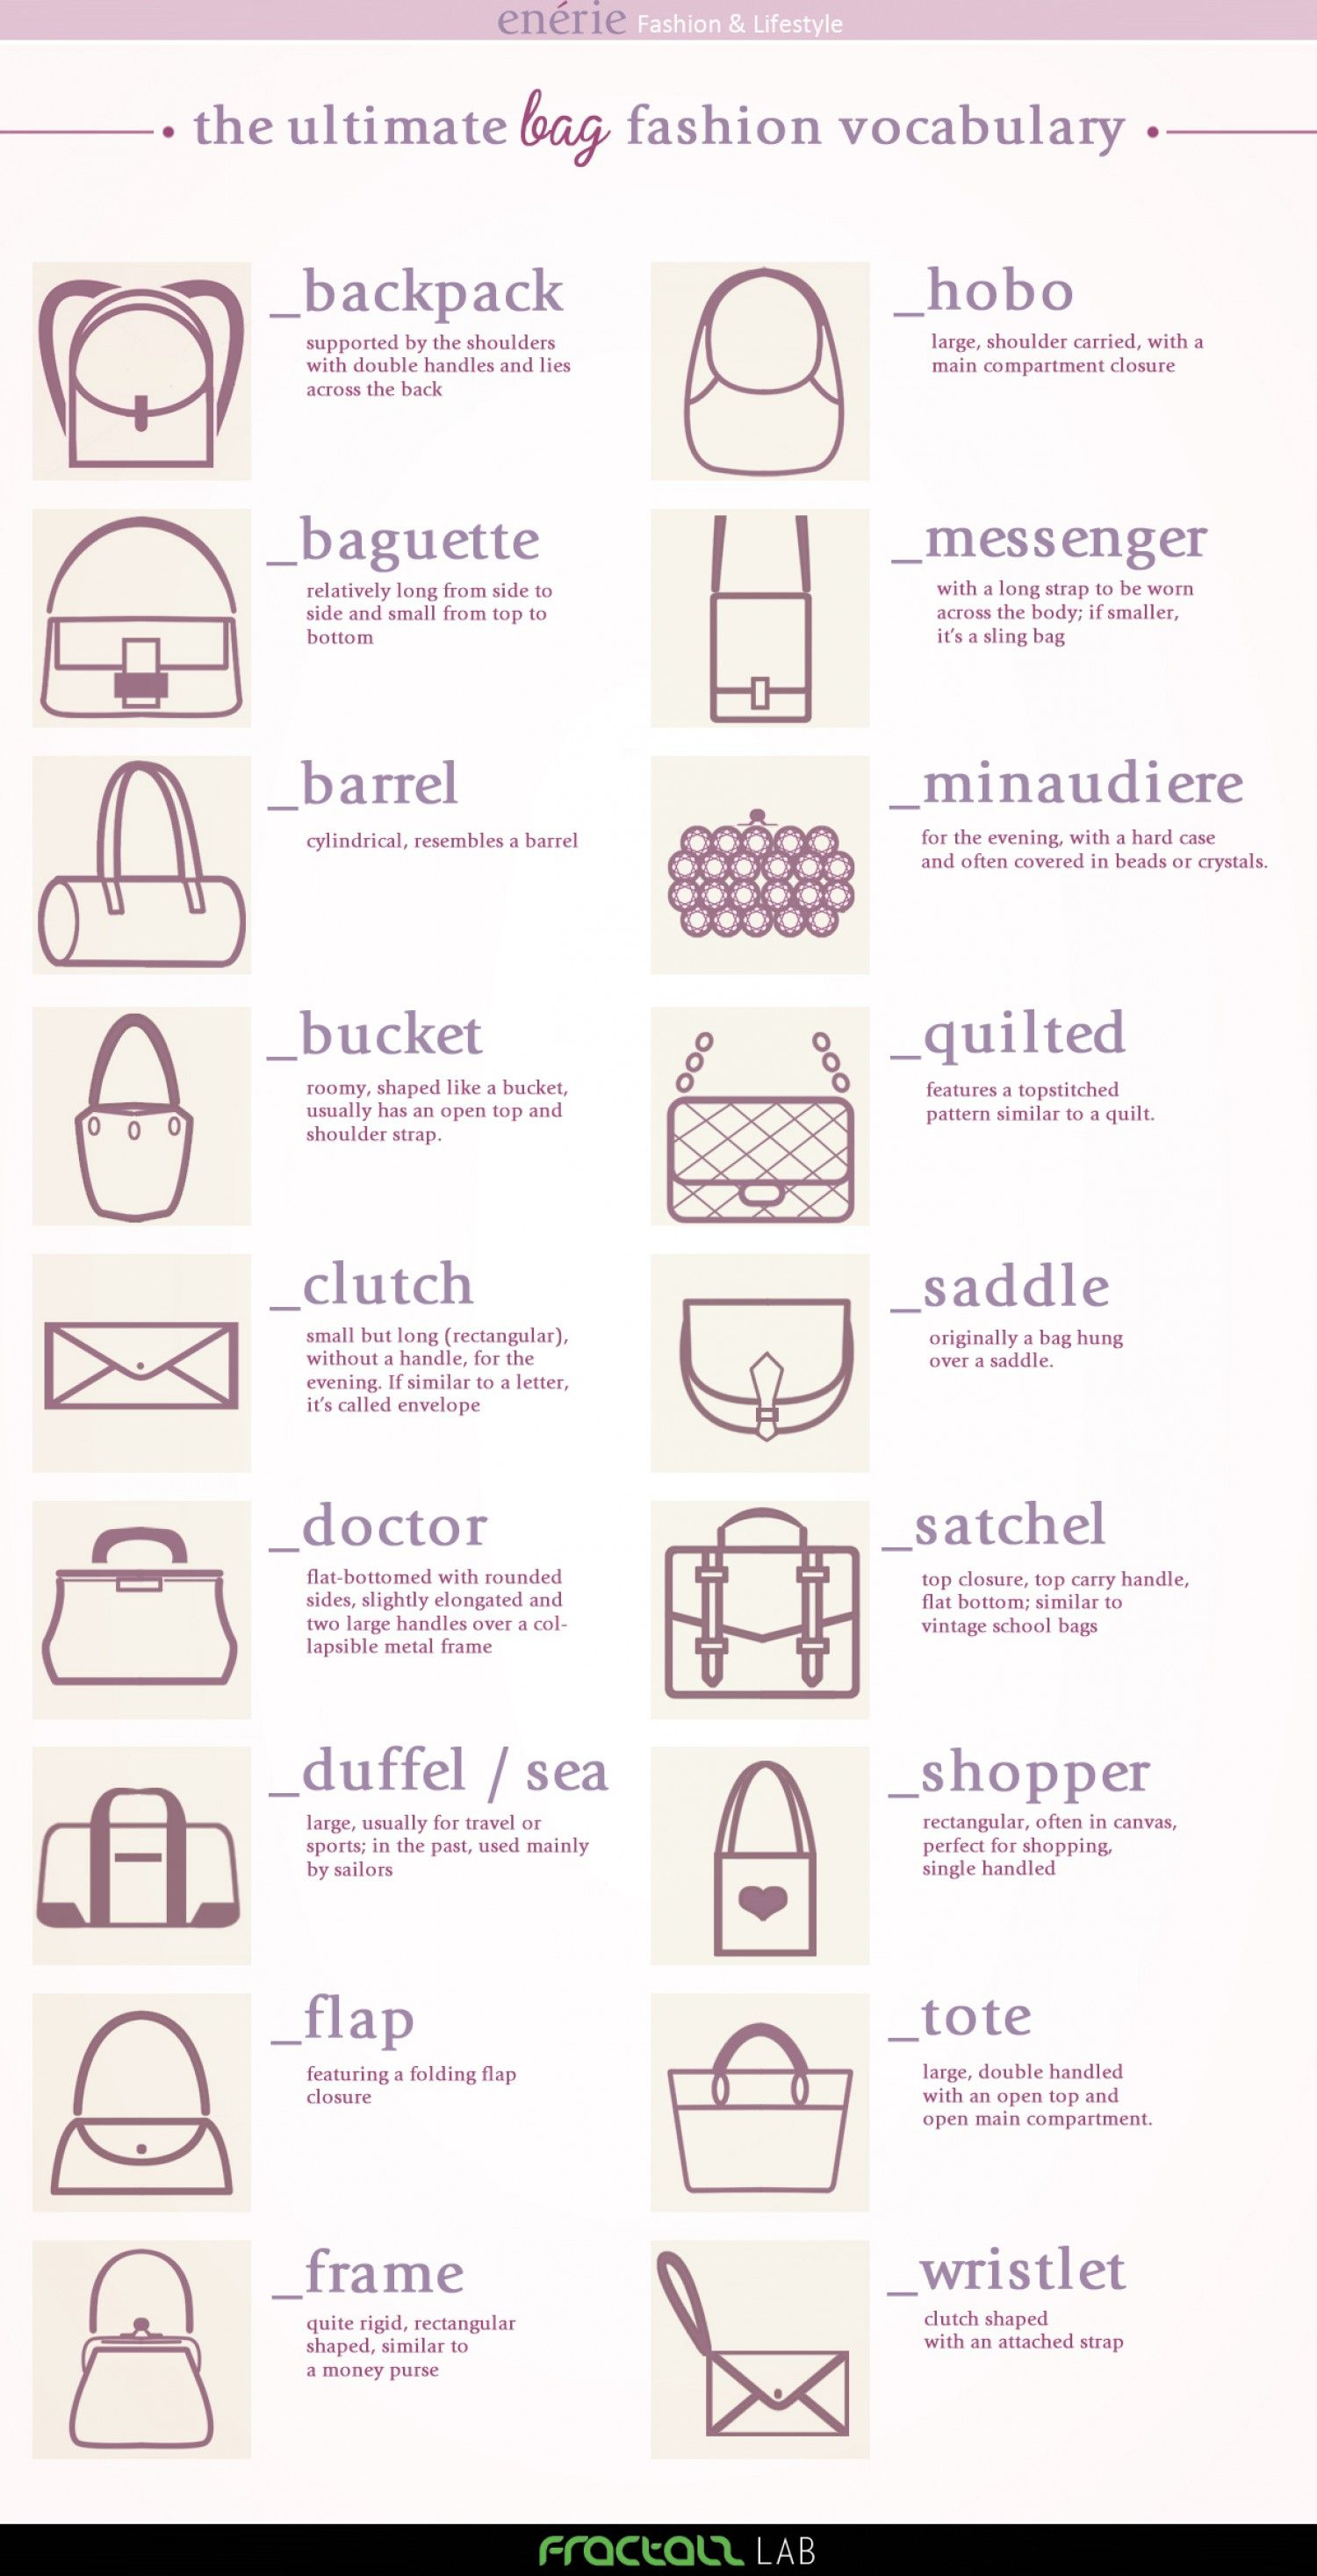 medium resolution of 18 fashionable types of bags women can consider when shopping for their next purse or handbag www ladylifehacks com